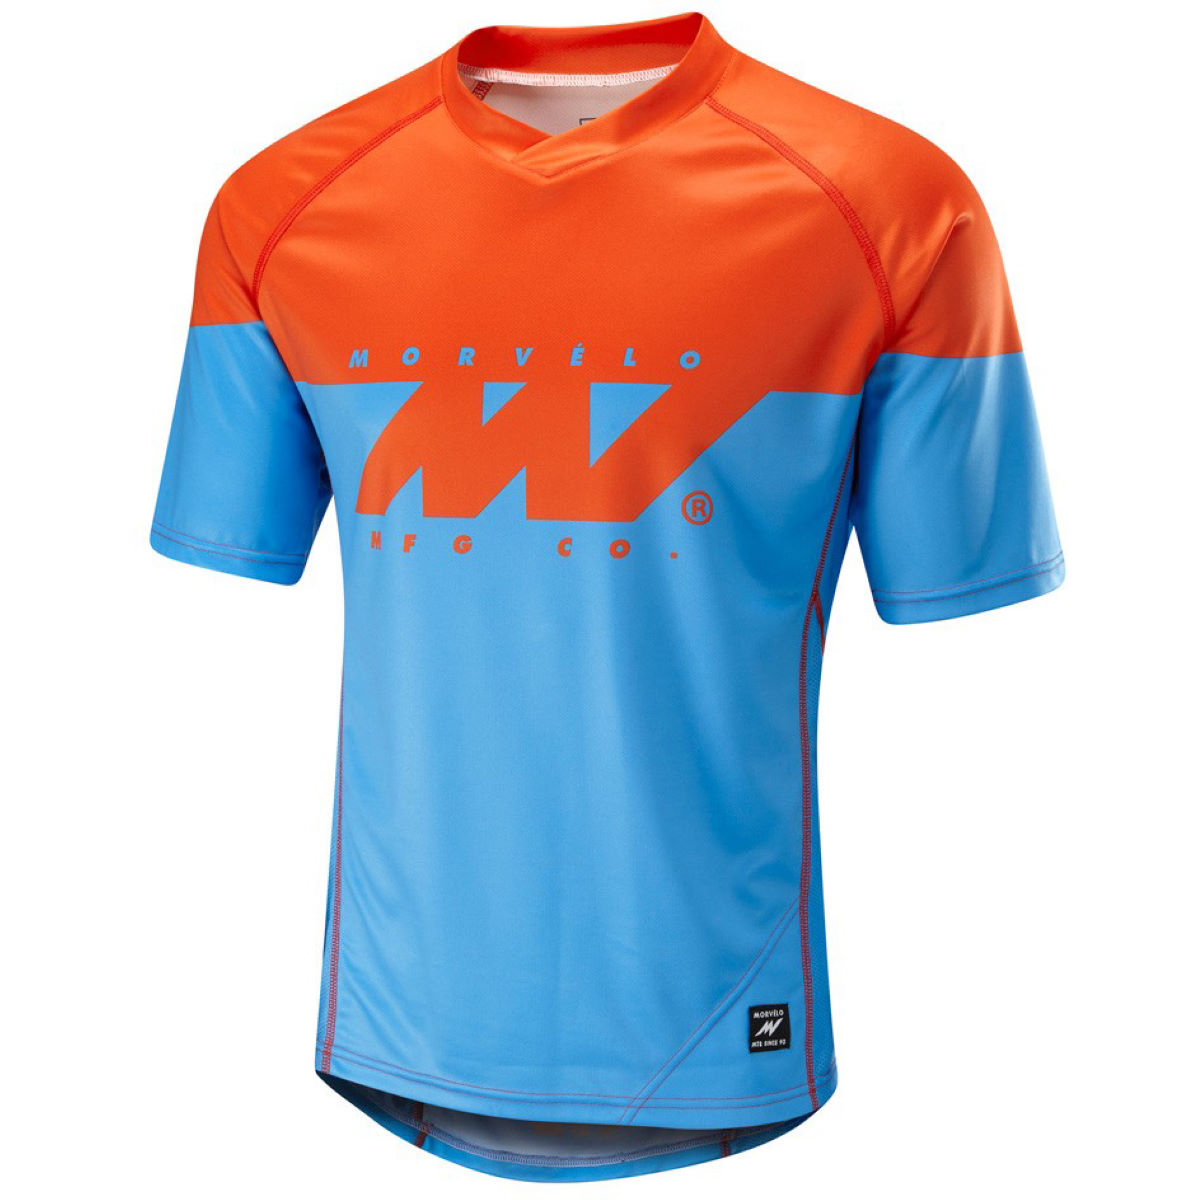 Maillot VTT Morvelo Kuler (manches courtes) - XL Blue/Red Maillots